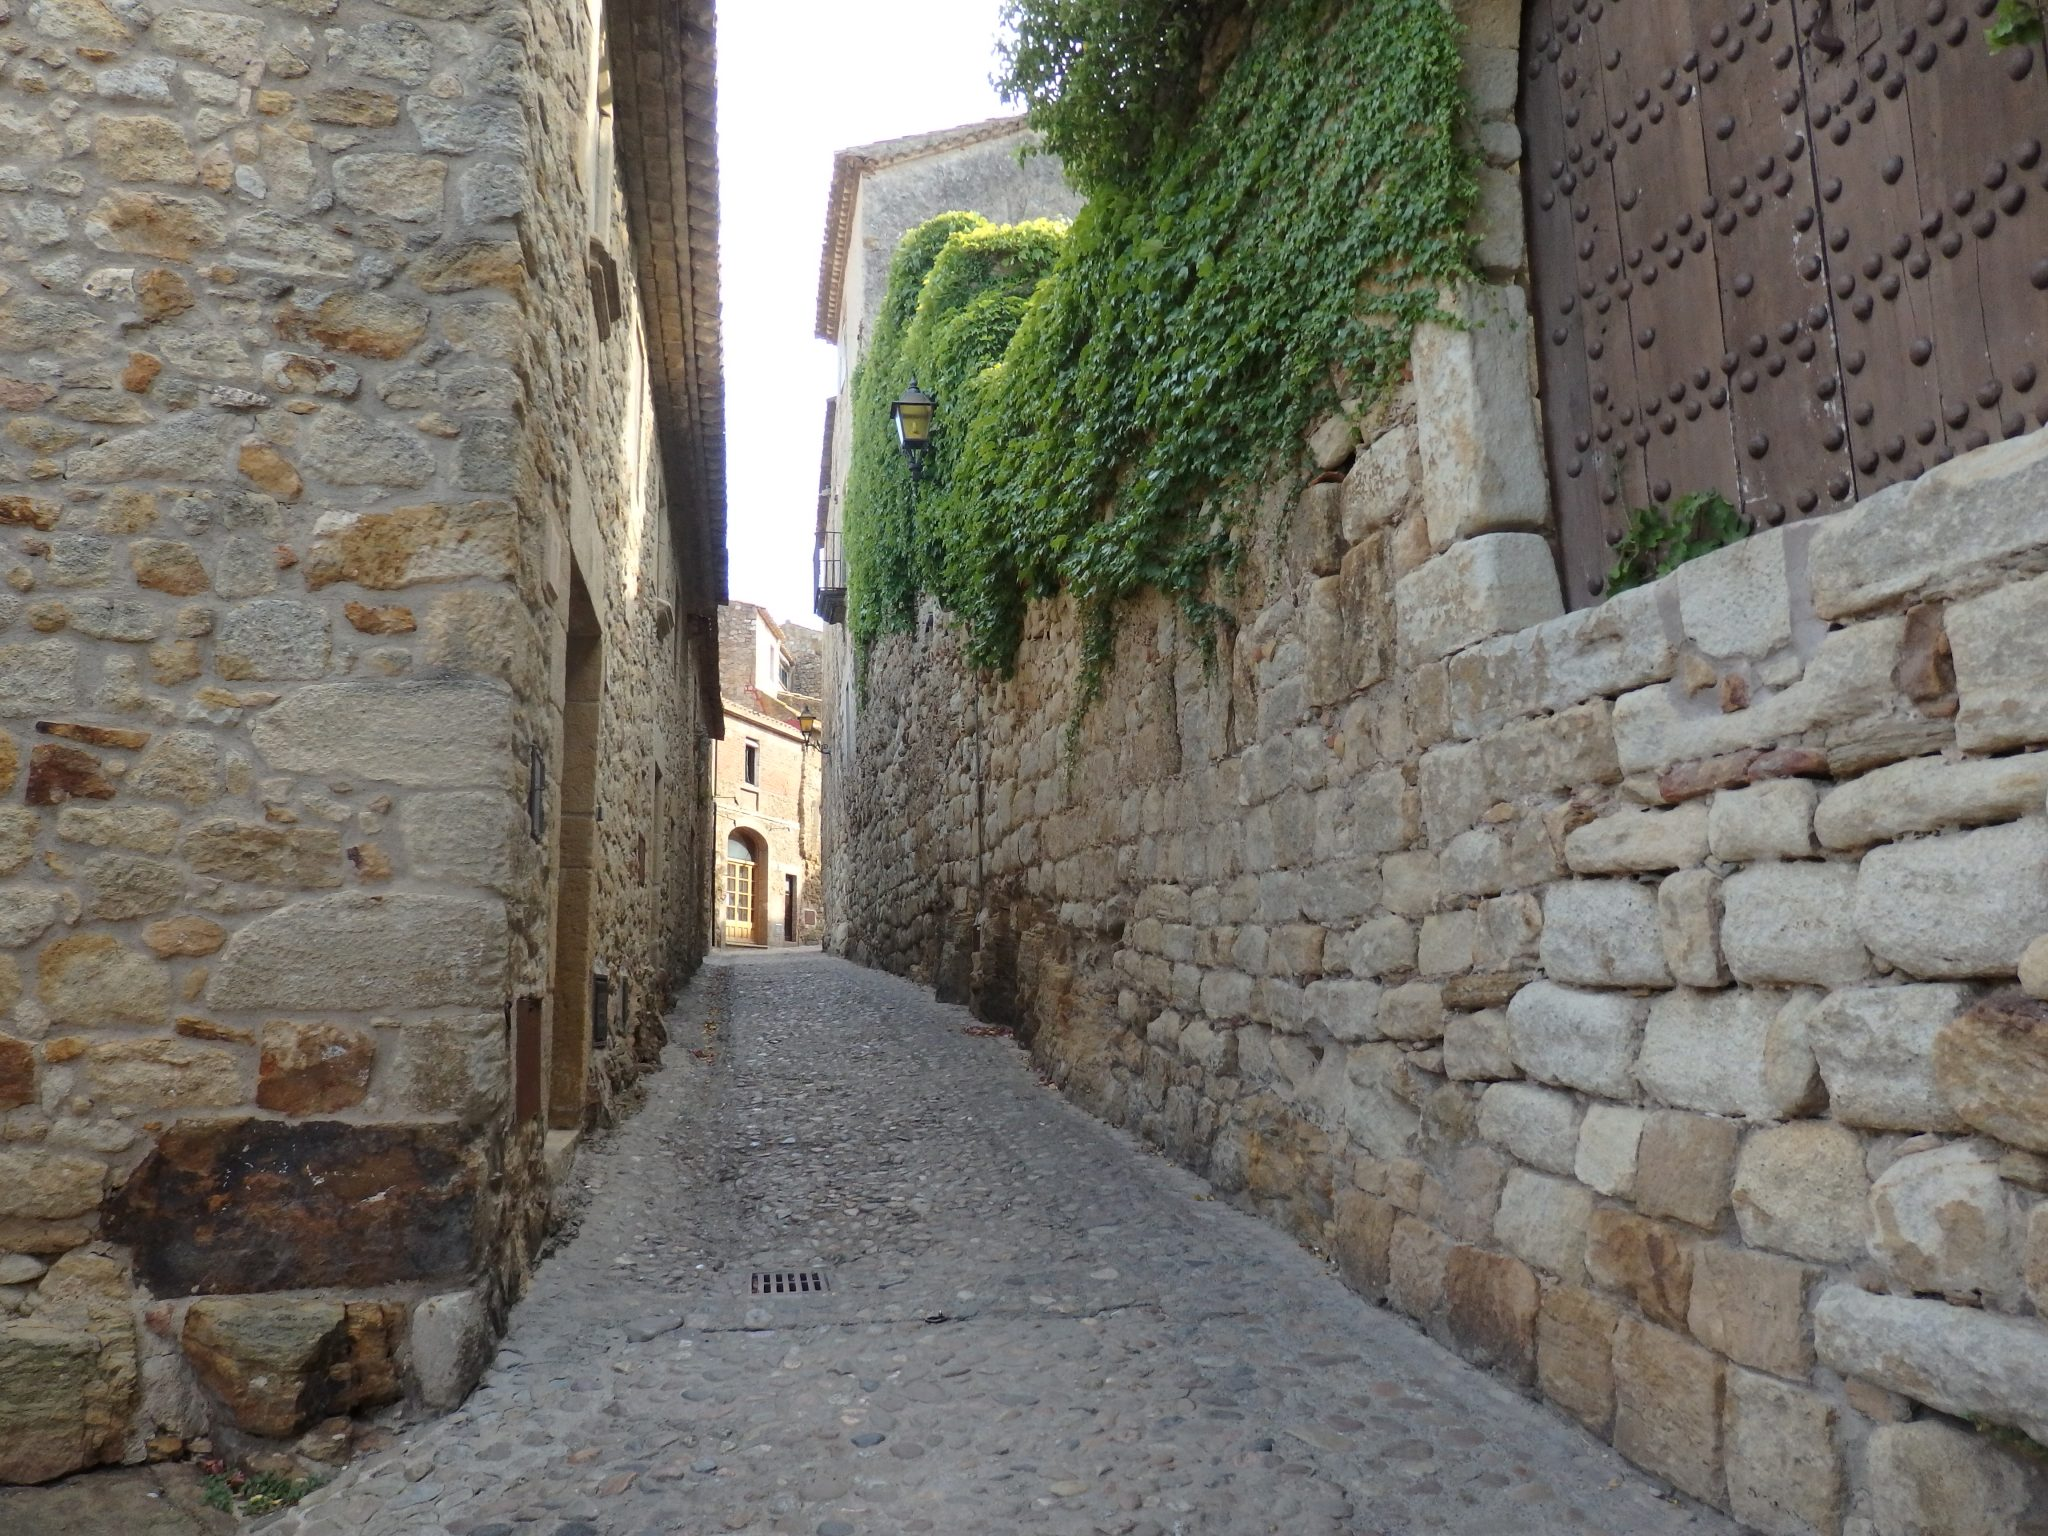 a stone paved street in Pals, in the Baix Emporda, Spain